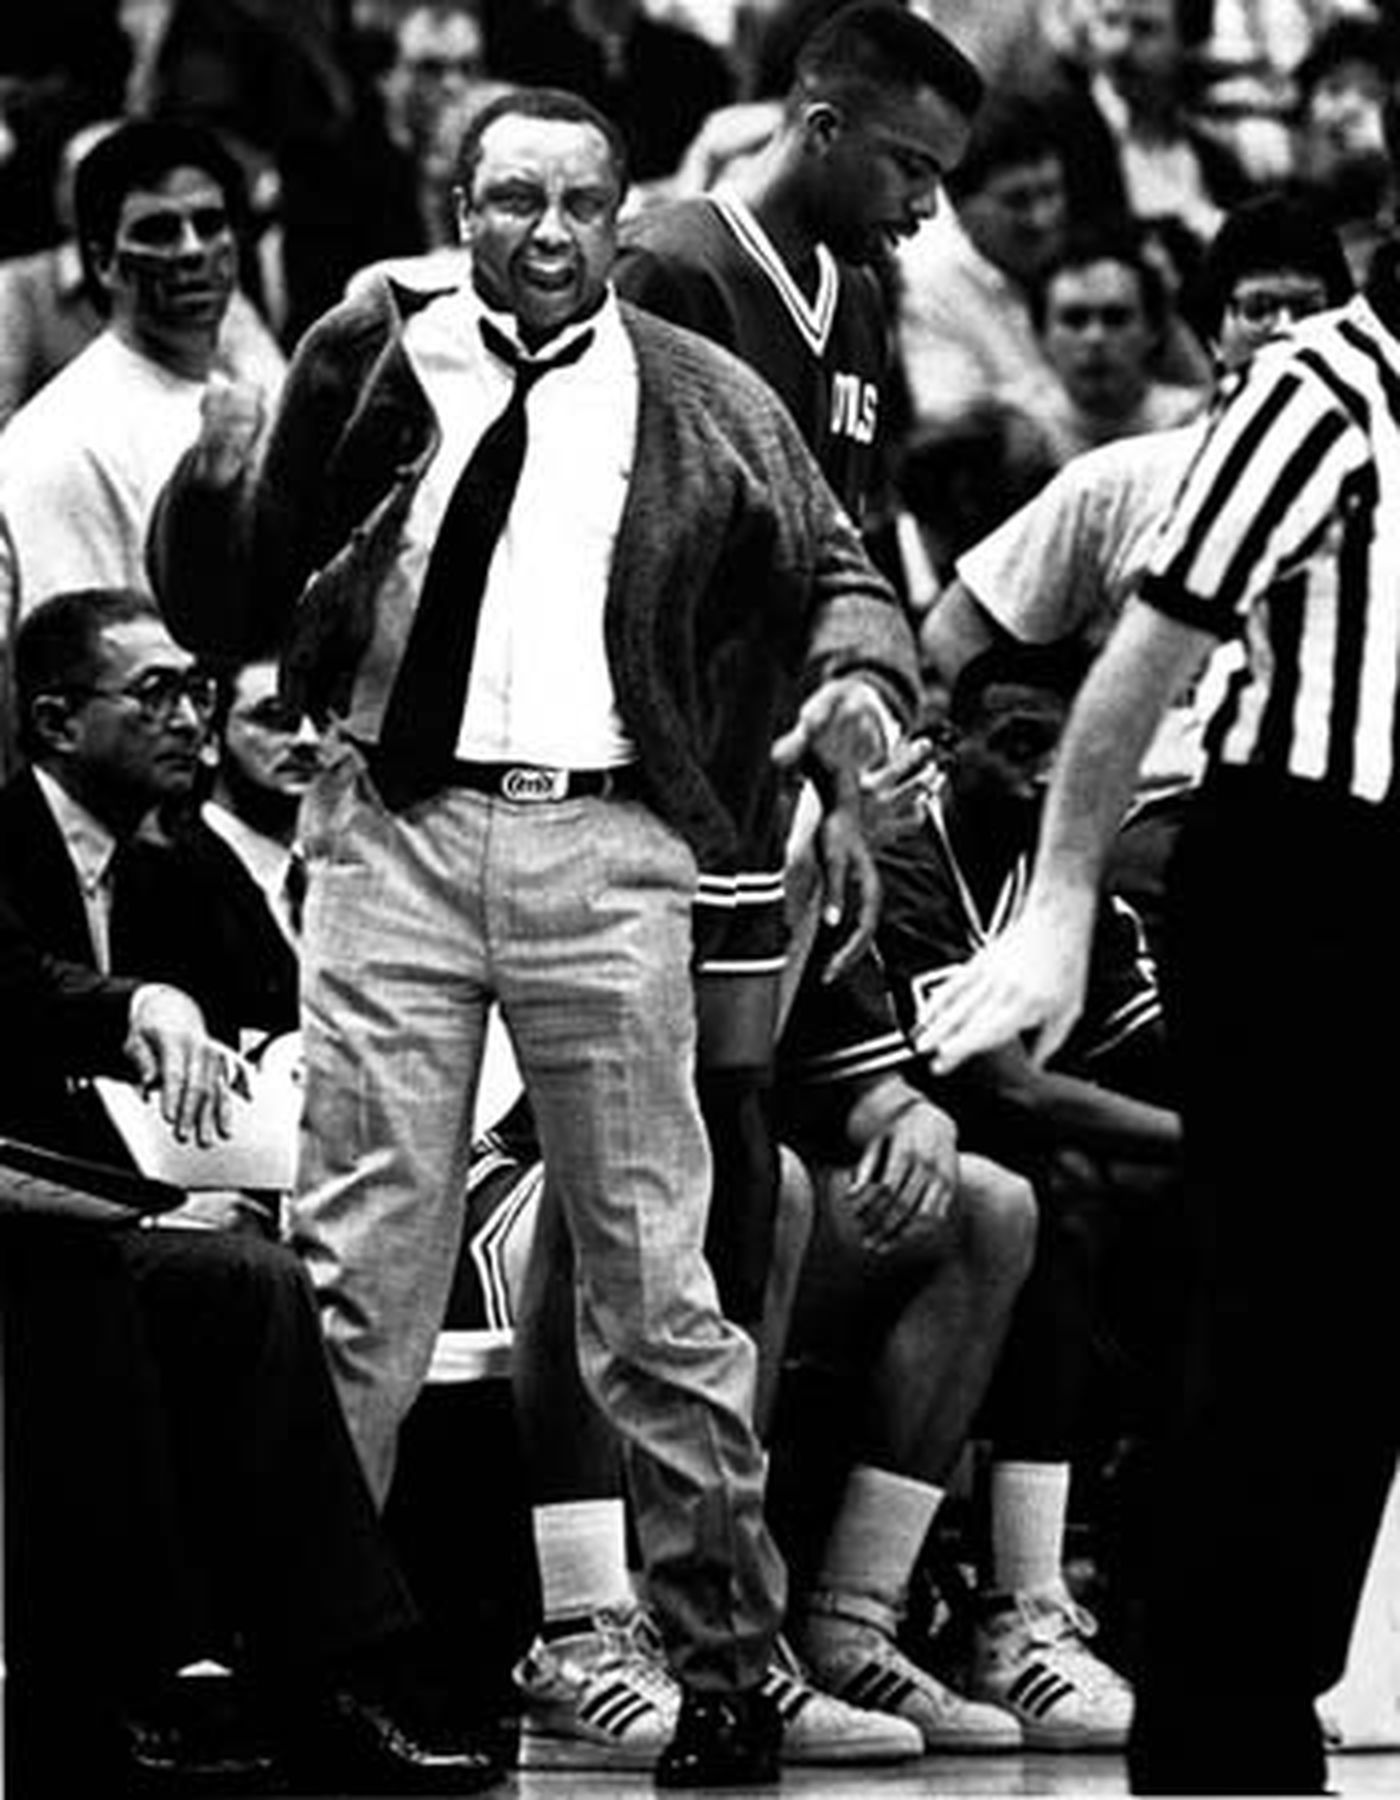 Temple Owls coach John Chaney on the sidelines of a game against North Carolina in 1988.